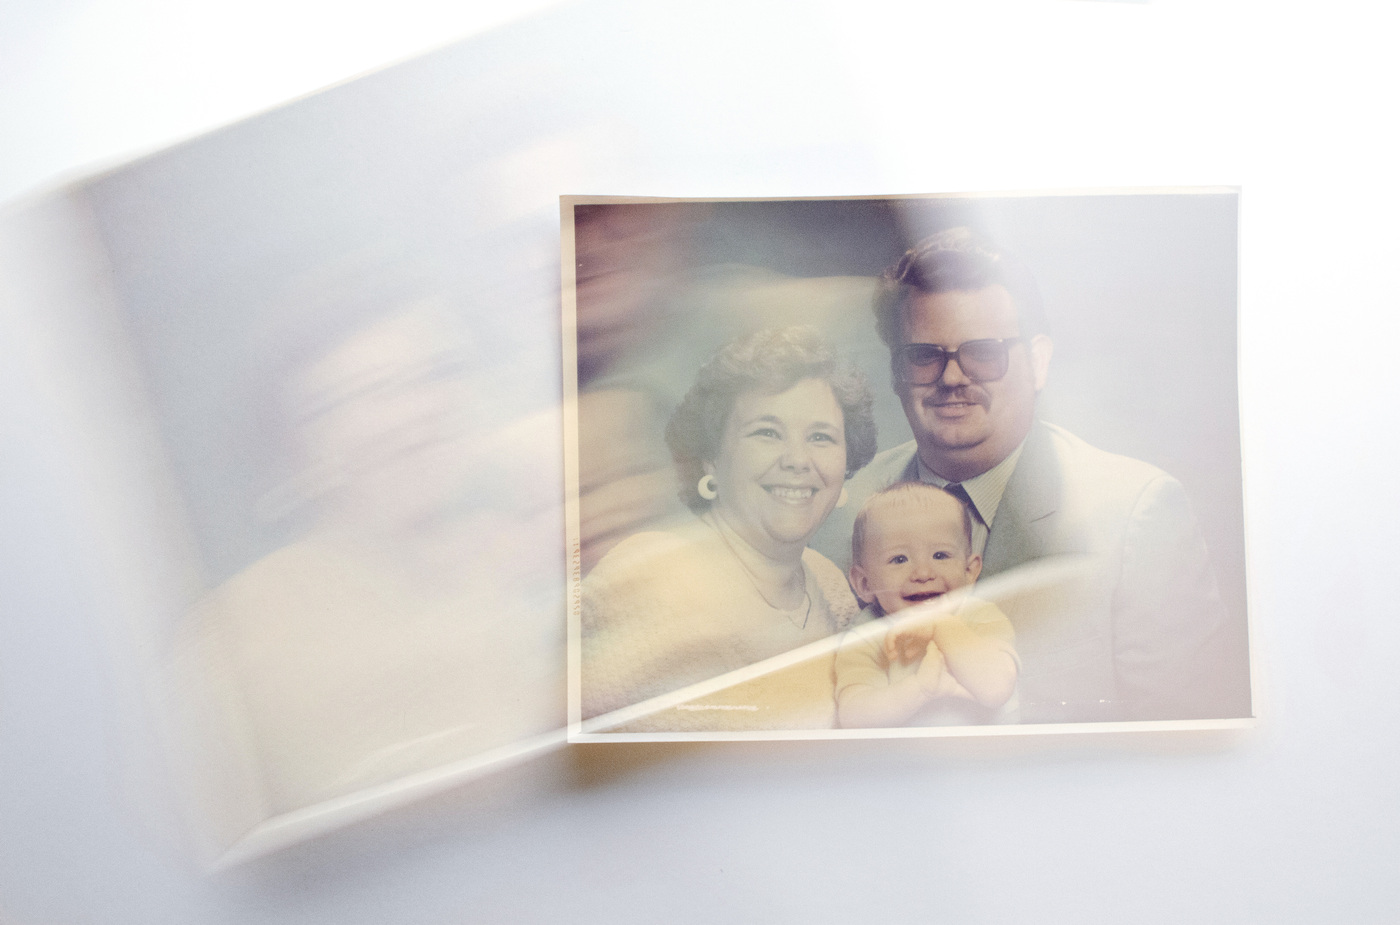 Brian Garbrecht - Uncertainty 2020. Digital Photograph of Family Archive.